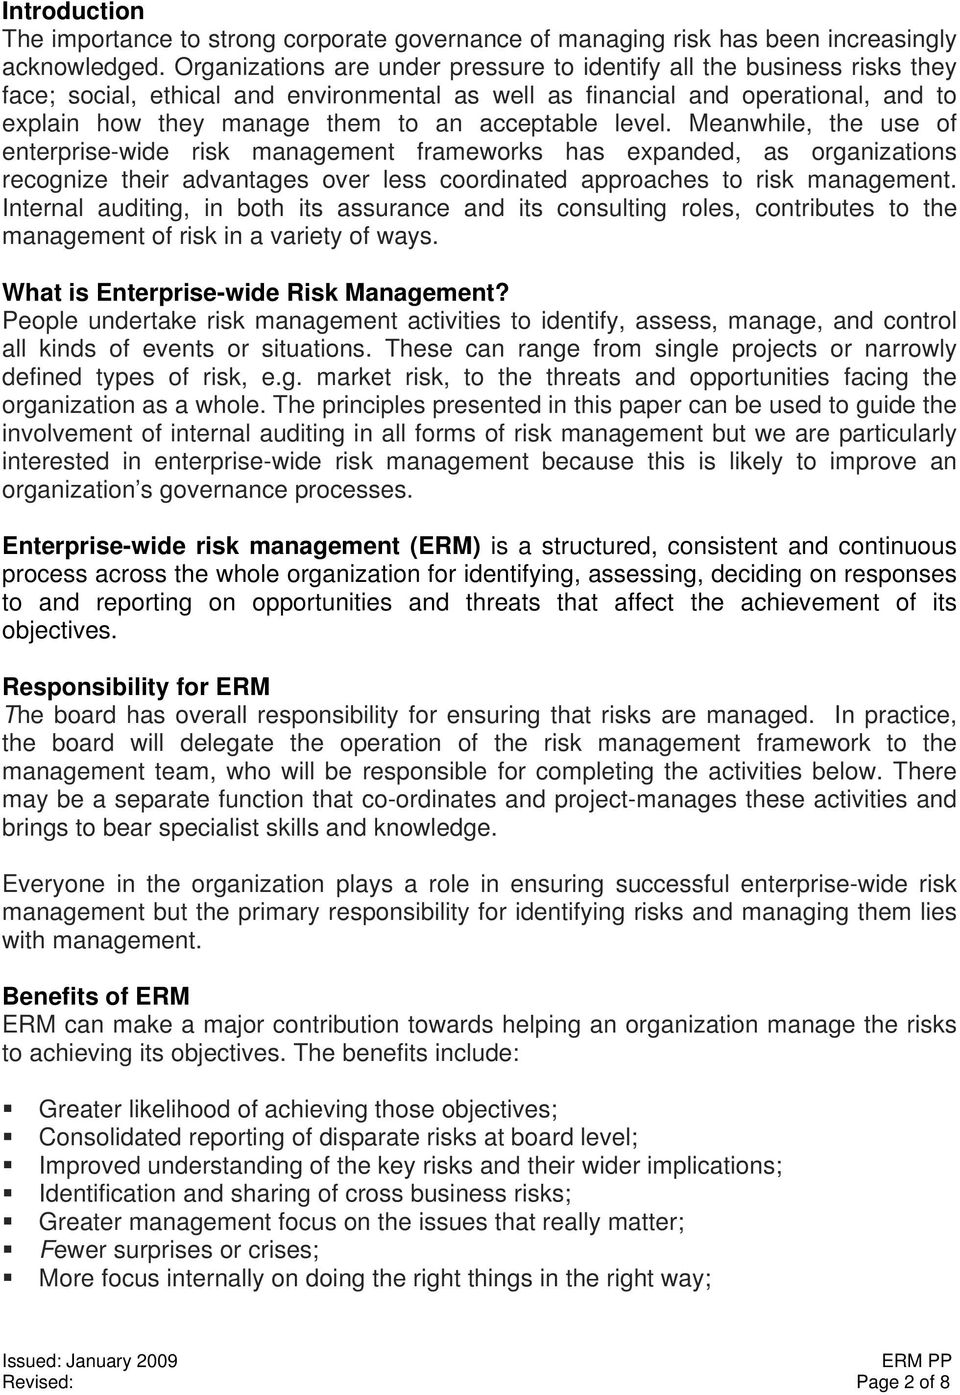 acceptable level. Meanwhile, the use of enterprise-wide risk management frameworks has expanded, as organizations recognize their advantages over less coordinated approaches to risk management.